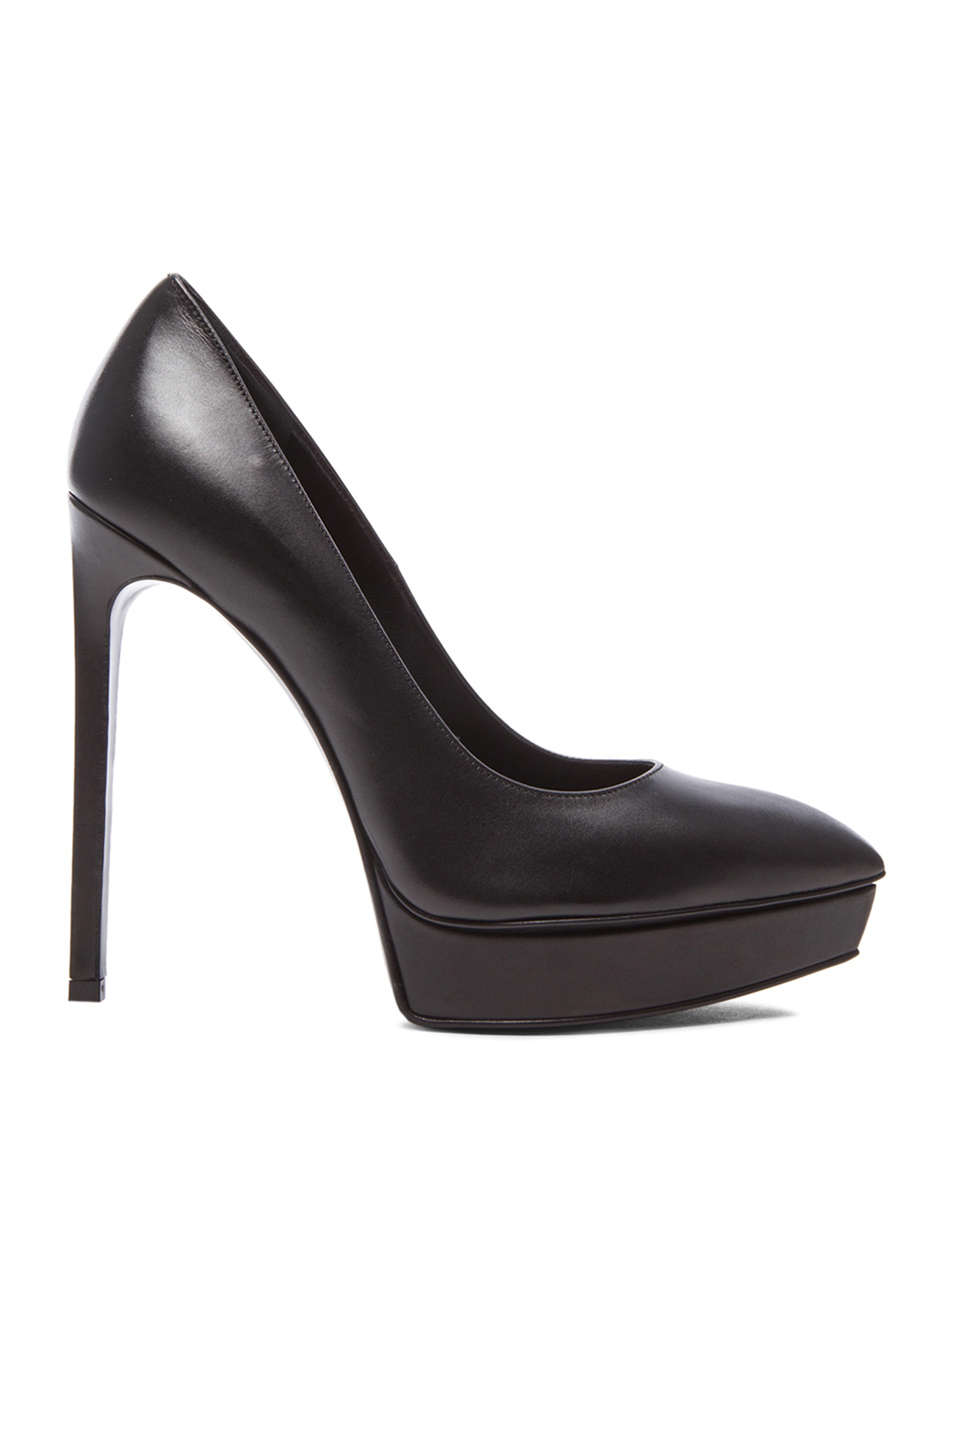 Saint Laurent 130mm Janis Tumbled Leather Pumps, Black